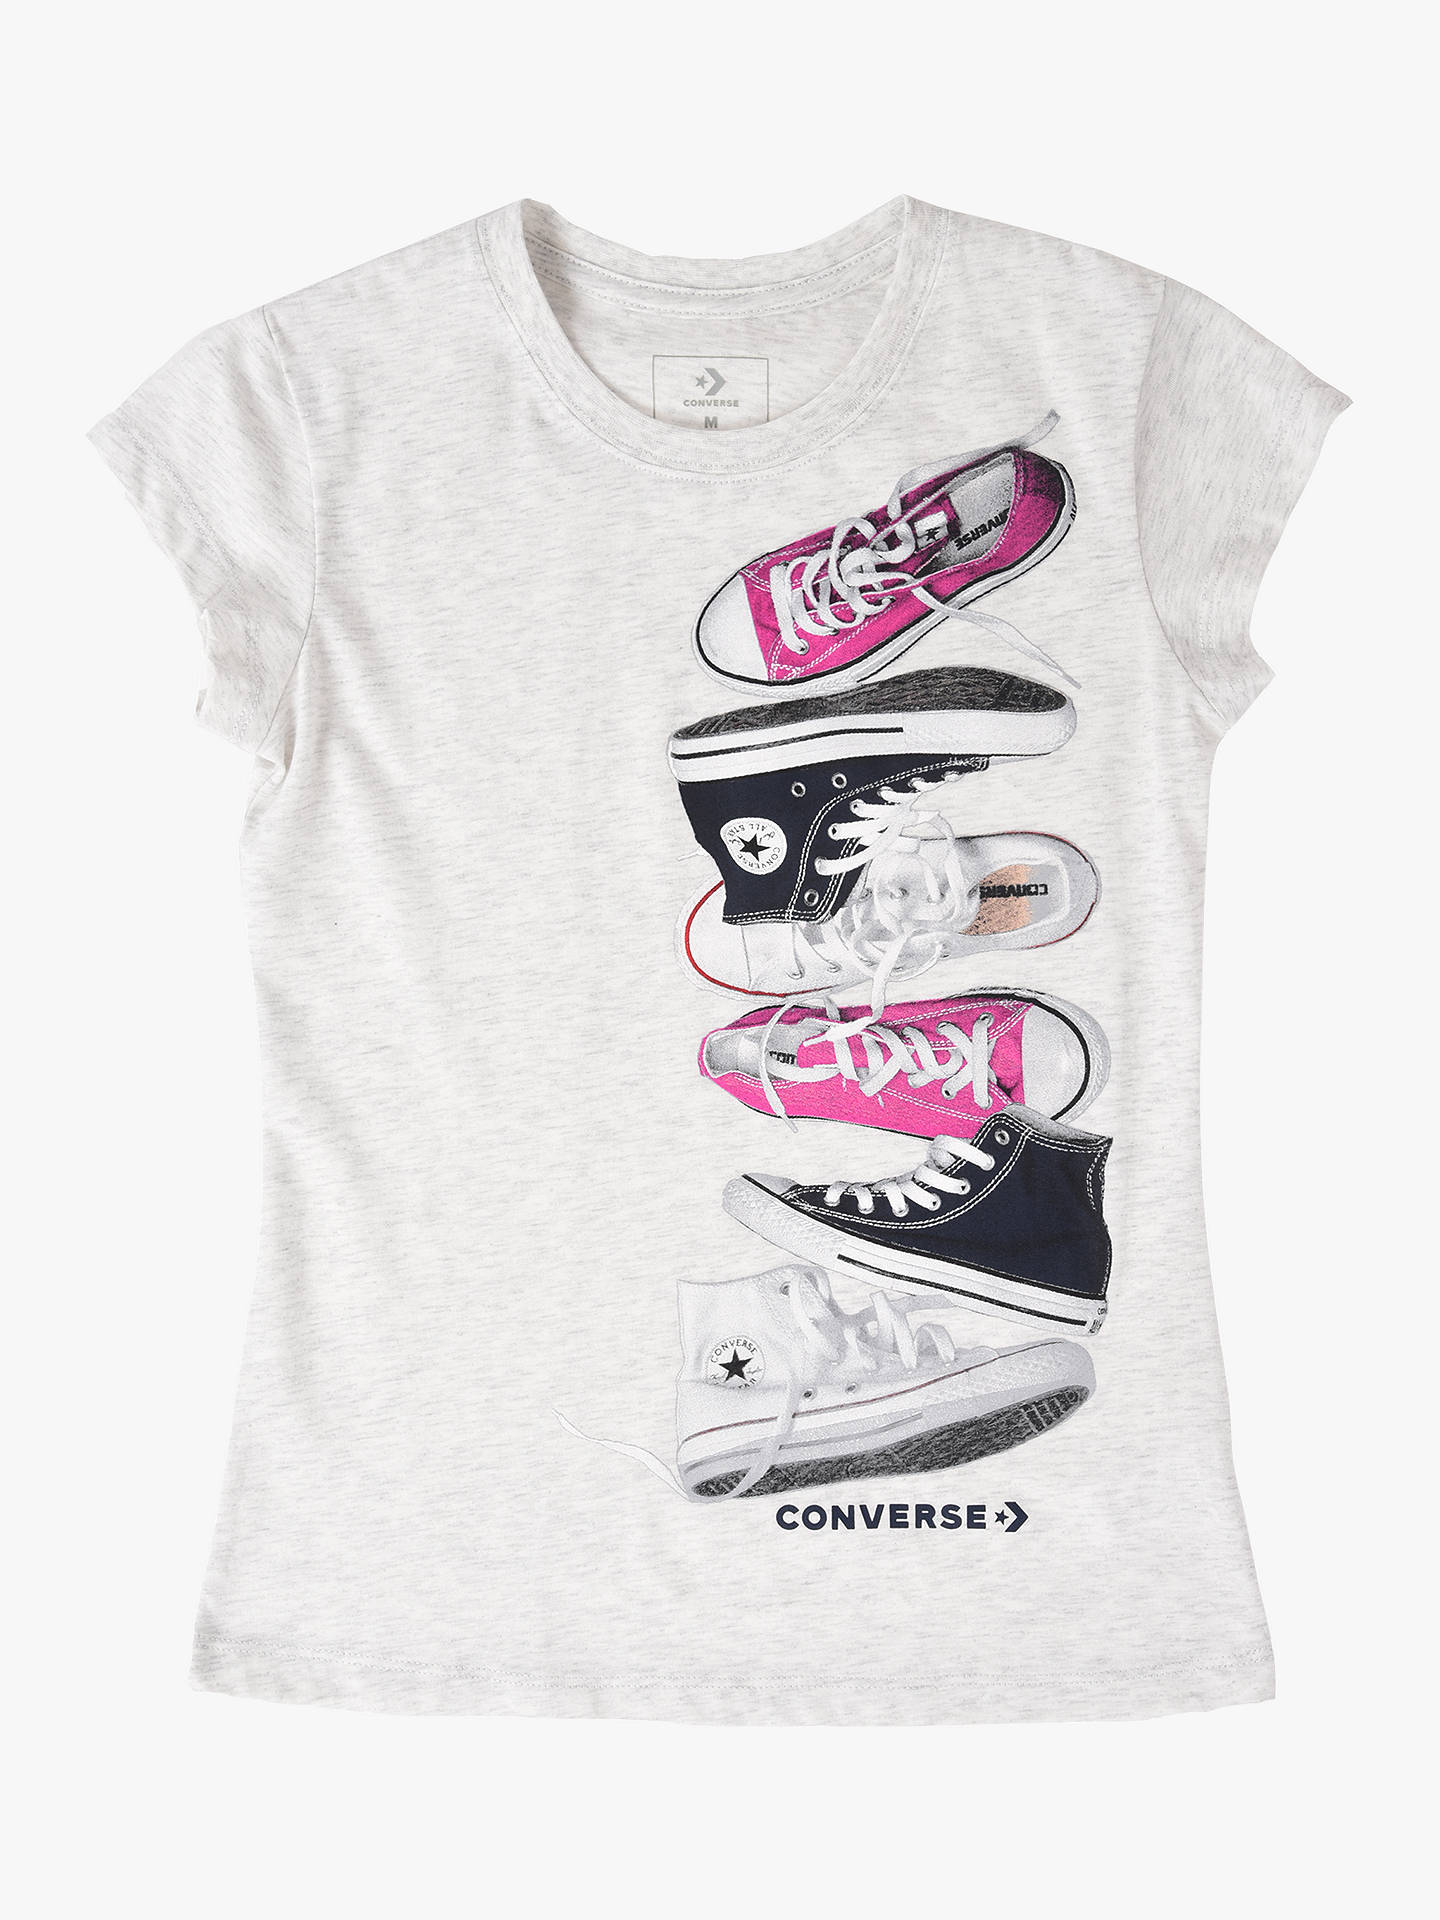 647aa71b6fe2 Buy Converse Girls  Shoe Print T-Shirt